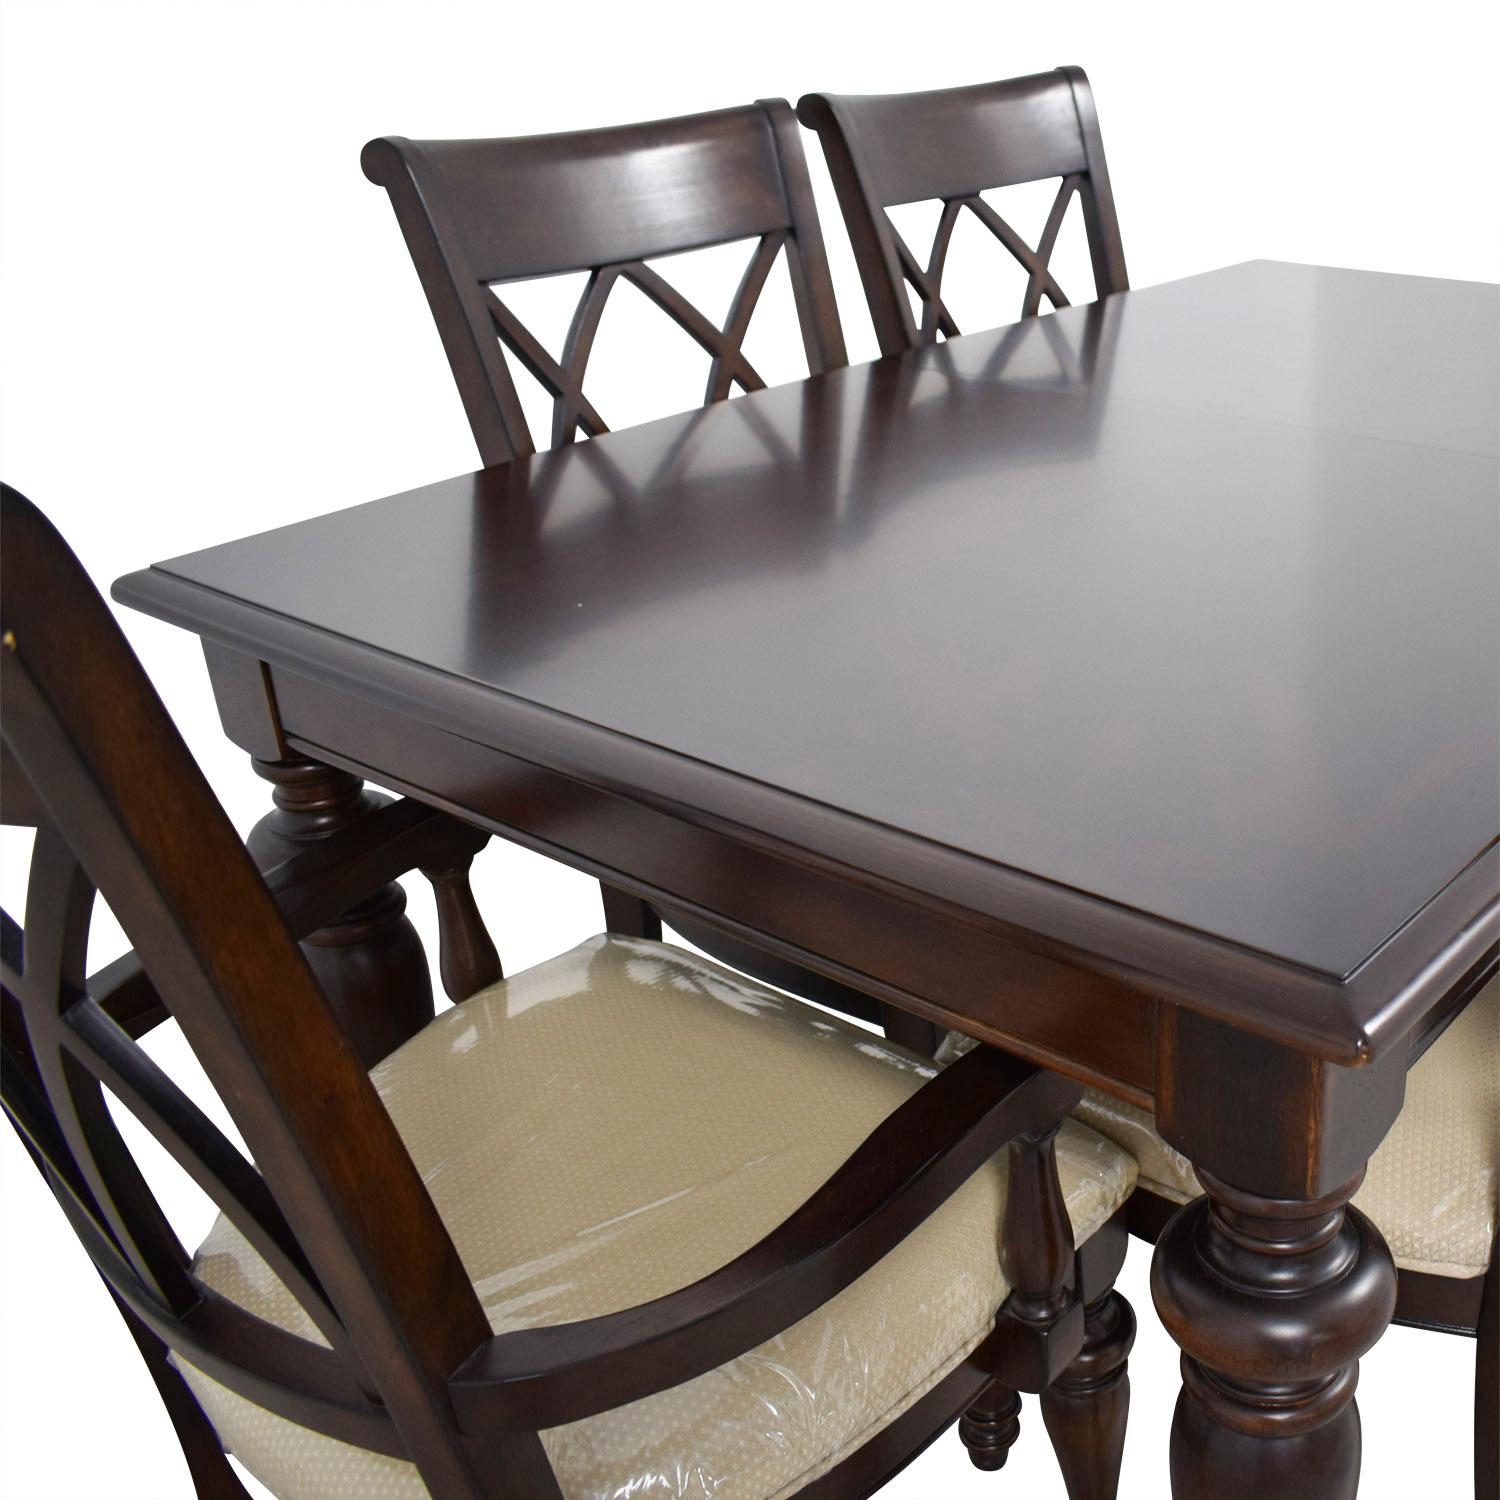 Macys Macys Wood Dining Set with Beige Upholstery second hand